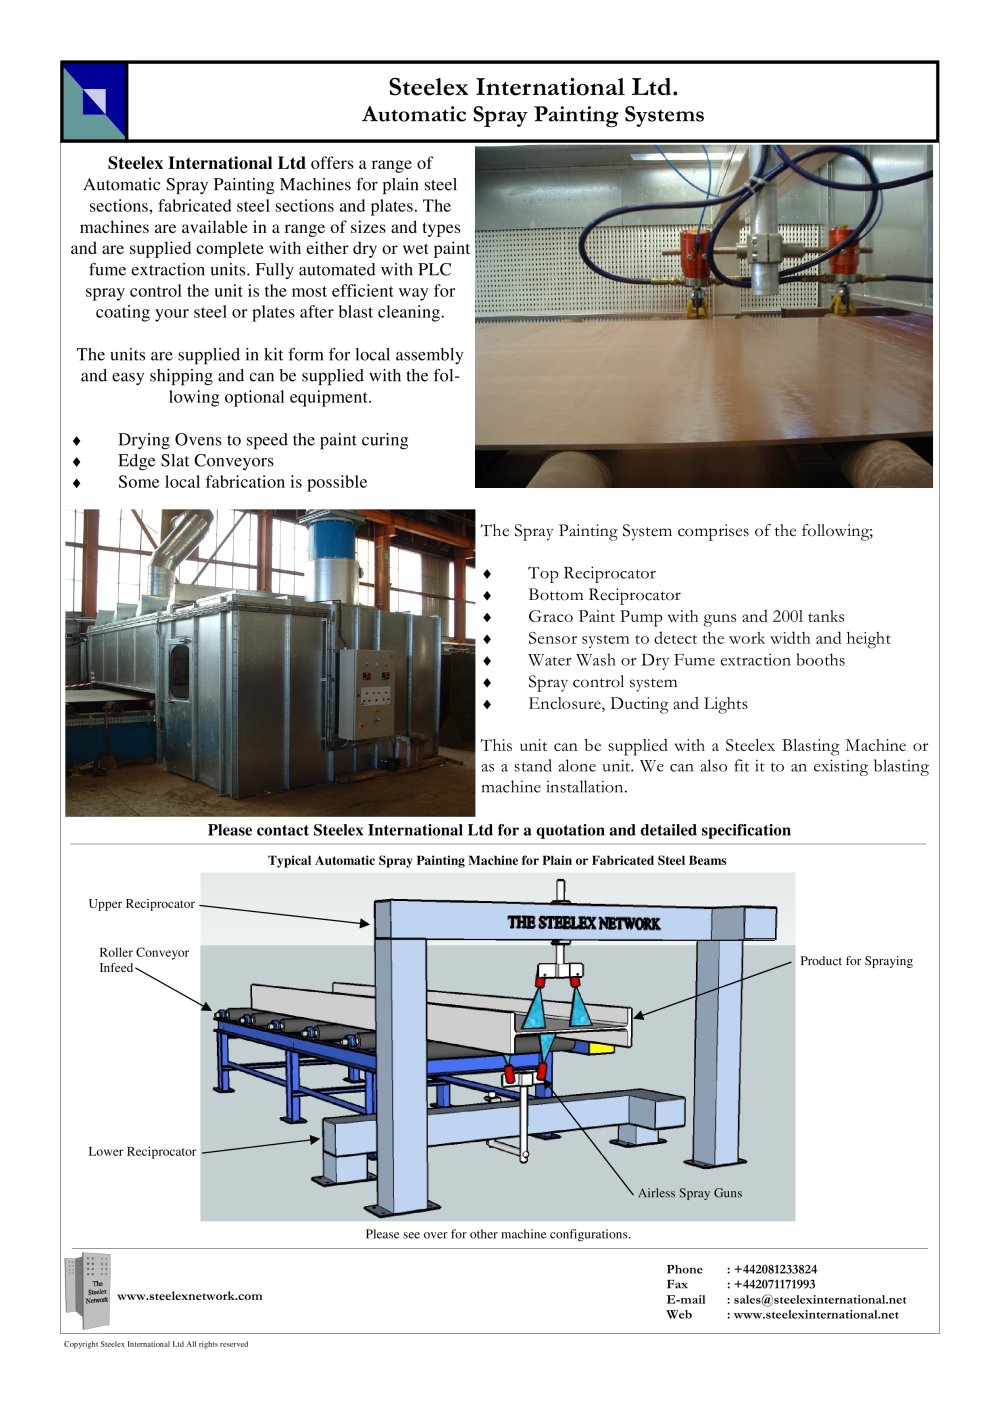 steelex automatic spray painting systems 1 2 pages